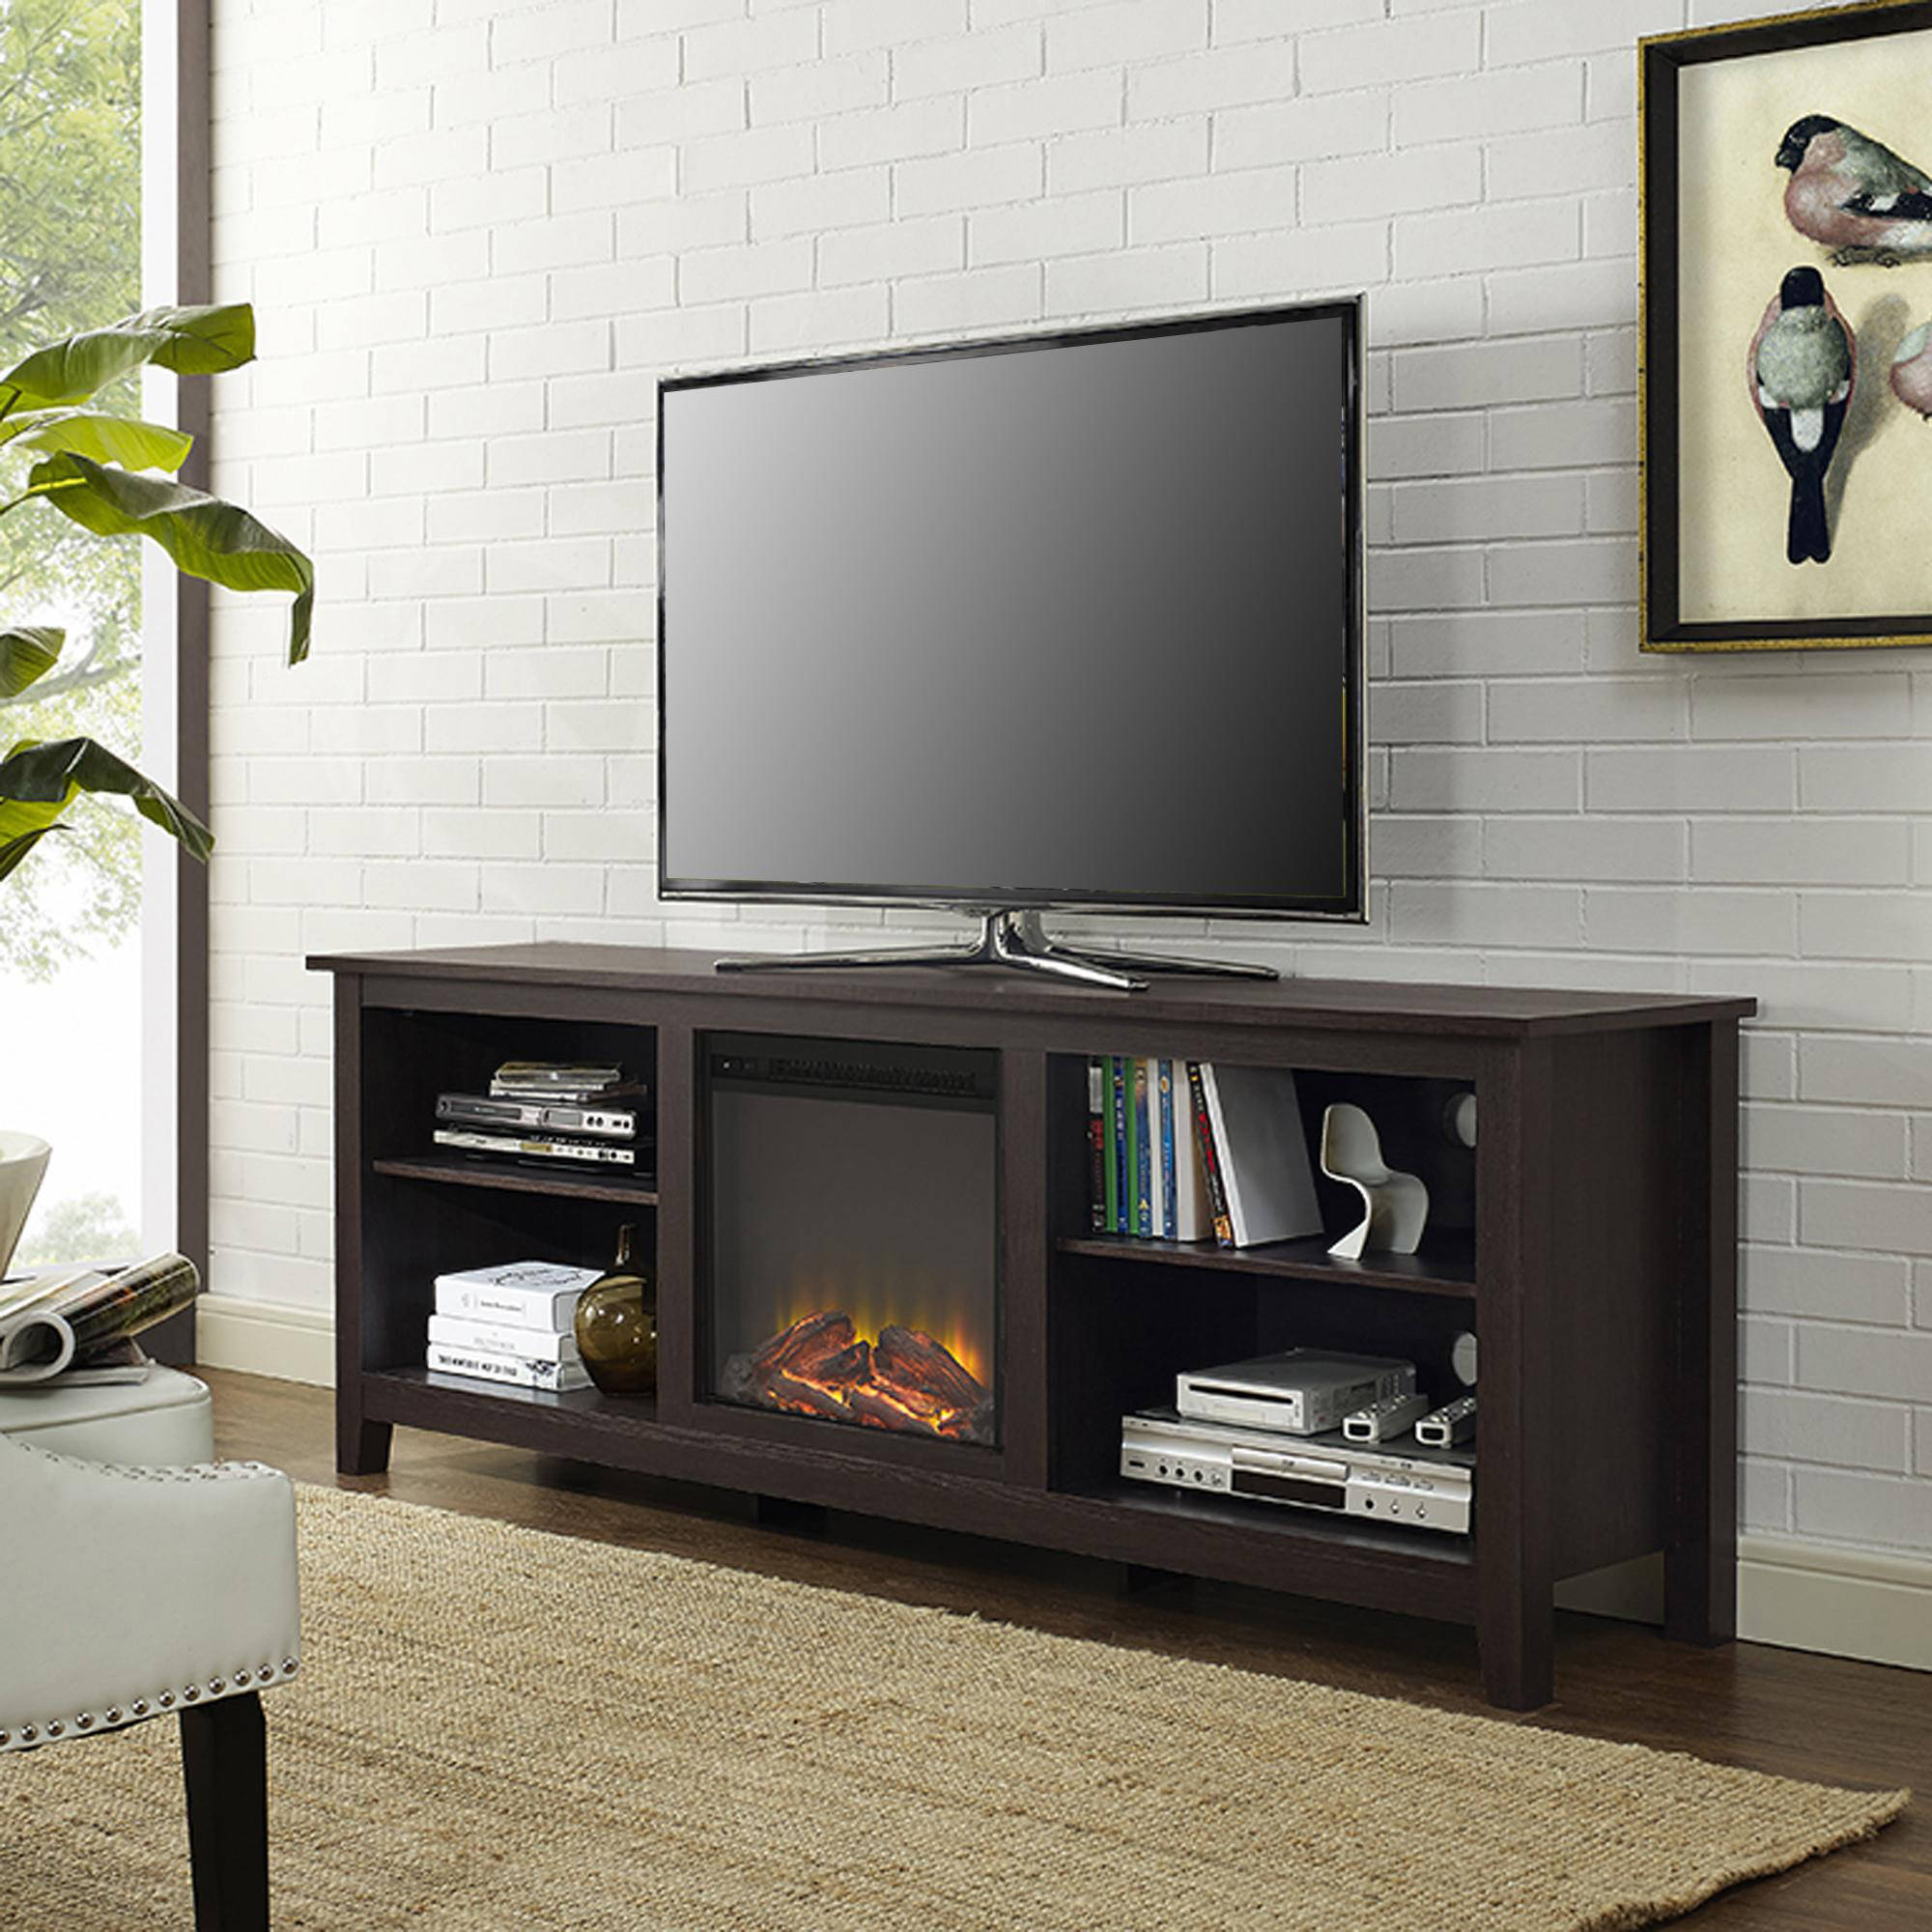 70 Fireplace Tv Media Storage Stand For S Up To 75 Espresso